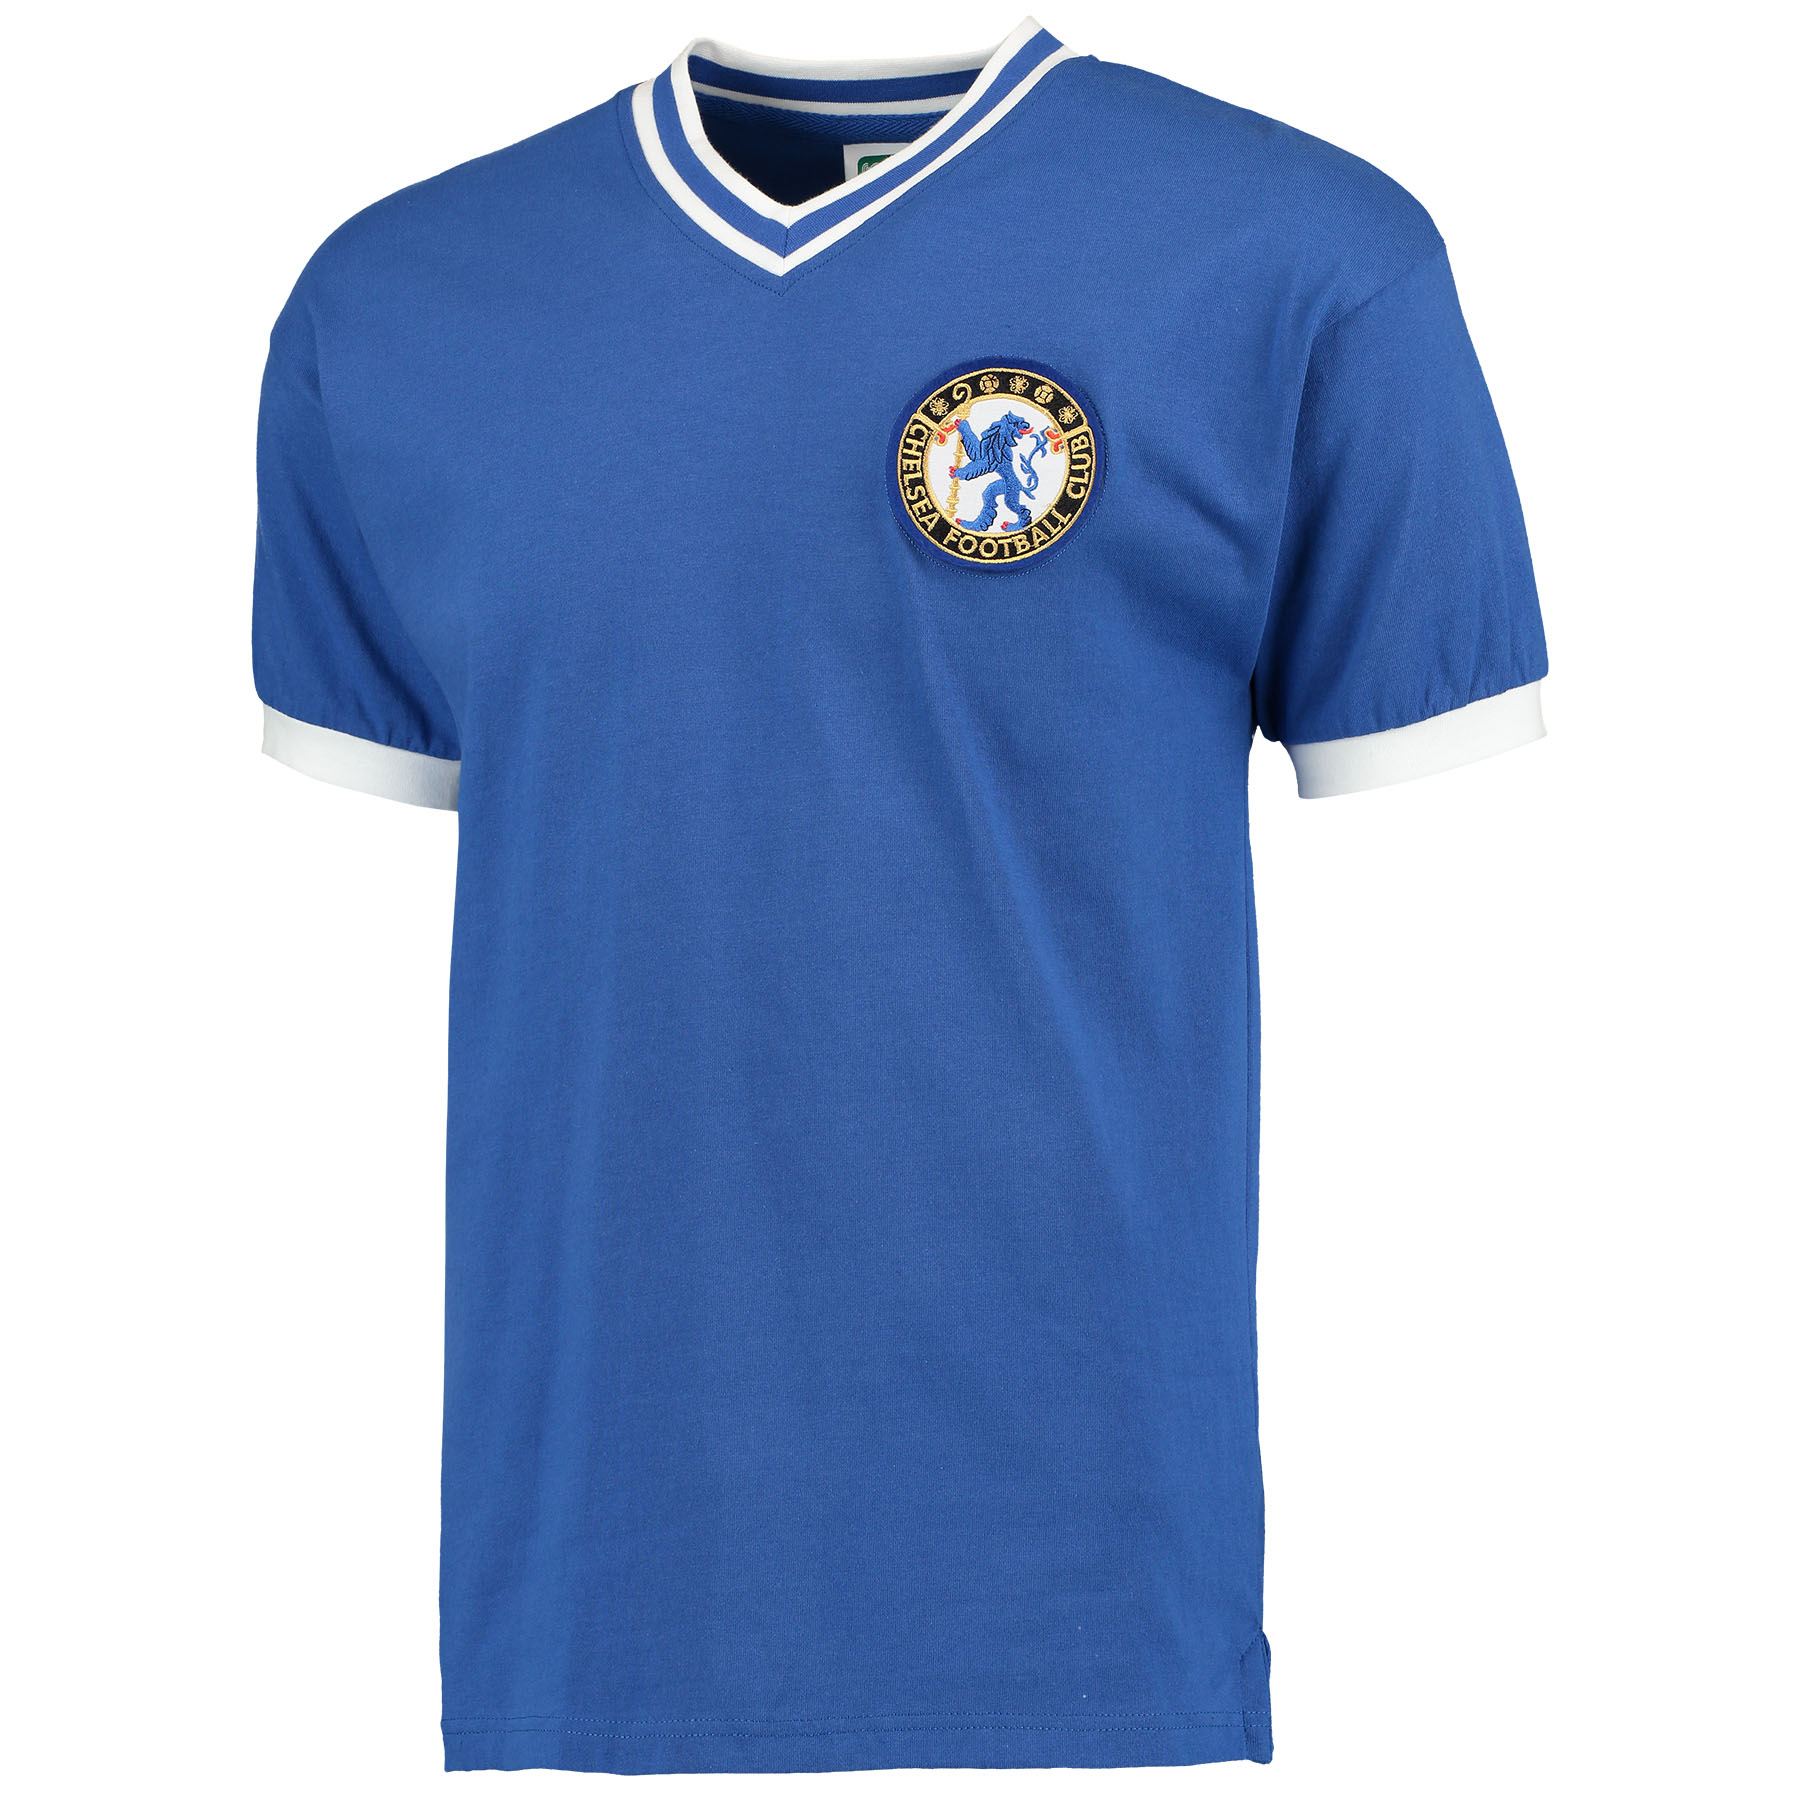 Chelsea 1960 No8 shirt